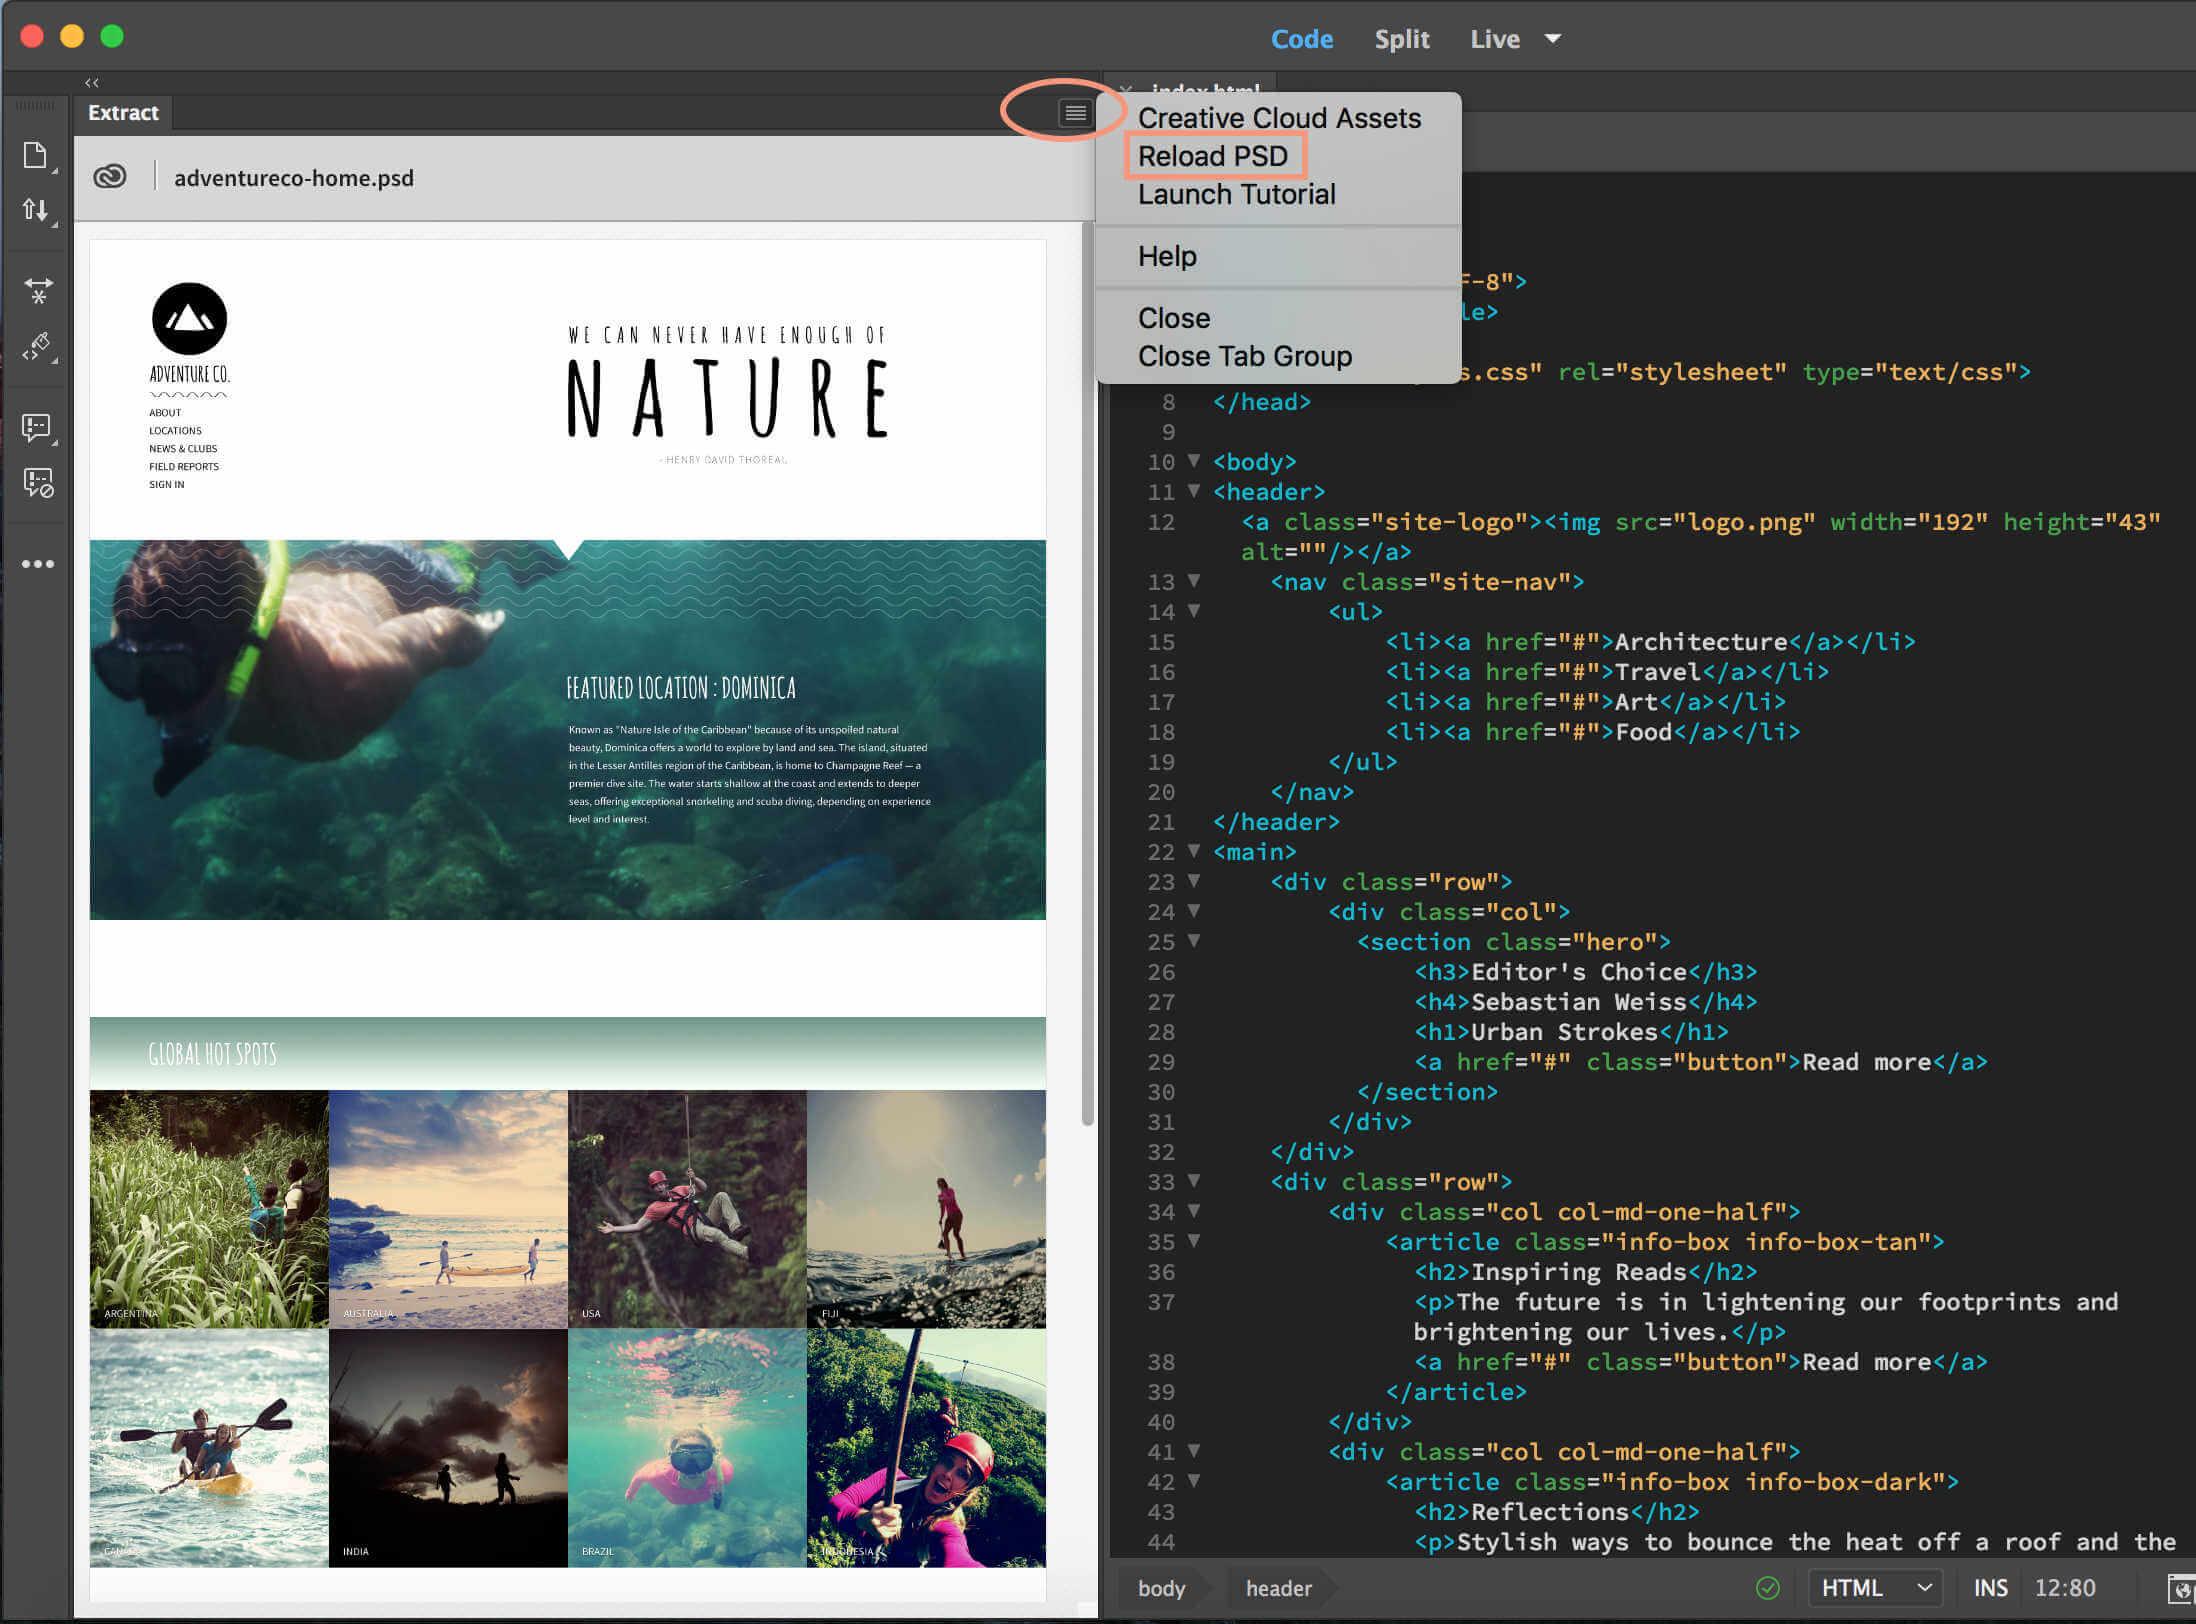 Interface de Adobe Dreamweaver